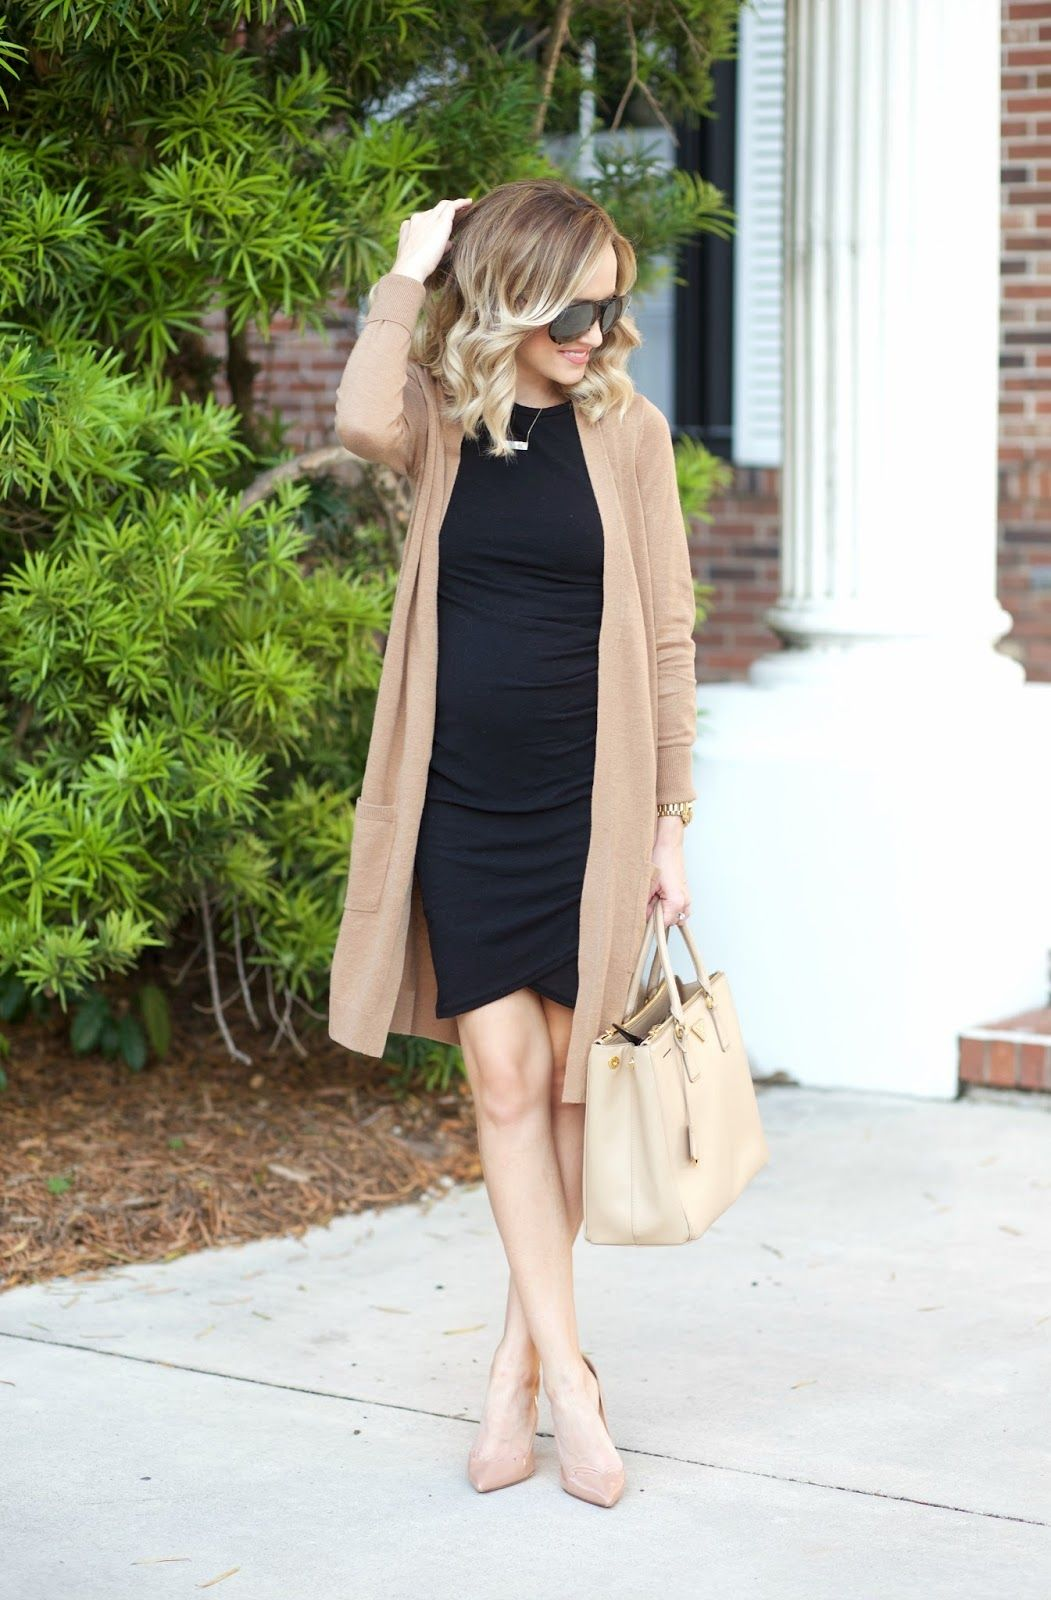 Lbd And My Favorite Cardigan A Spoonful Of Style Summer Work Outfits Casual Maternity Dress Fashion [ 1600 x 1051 Pixel ]